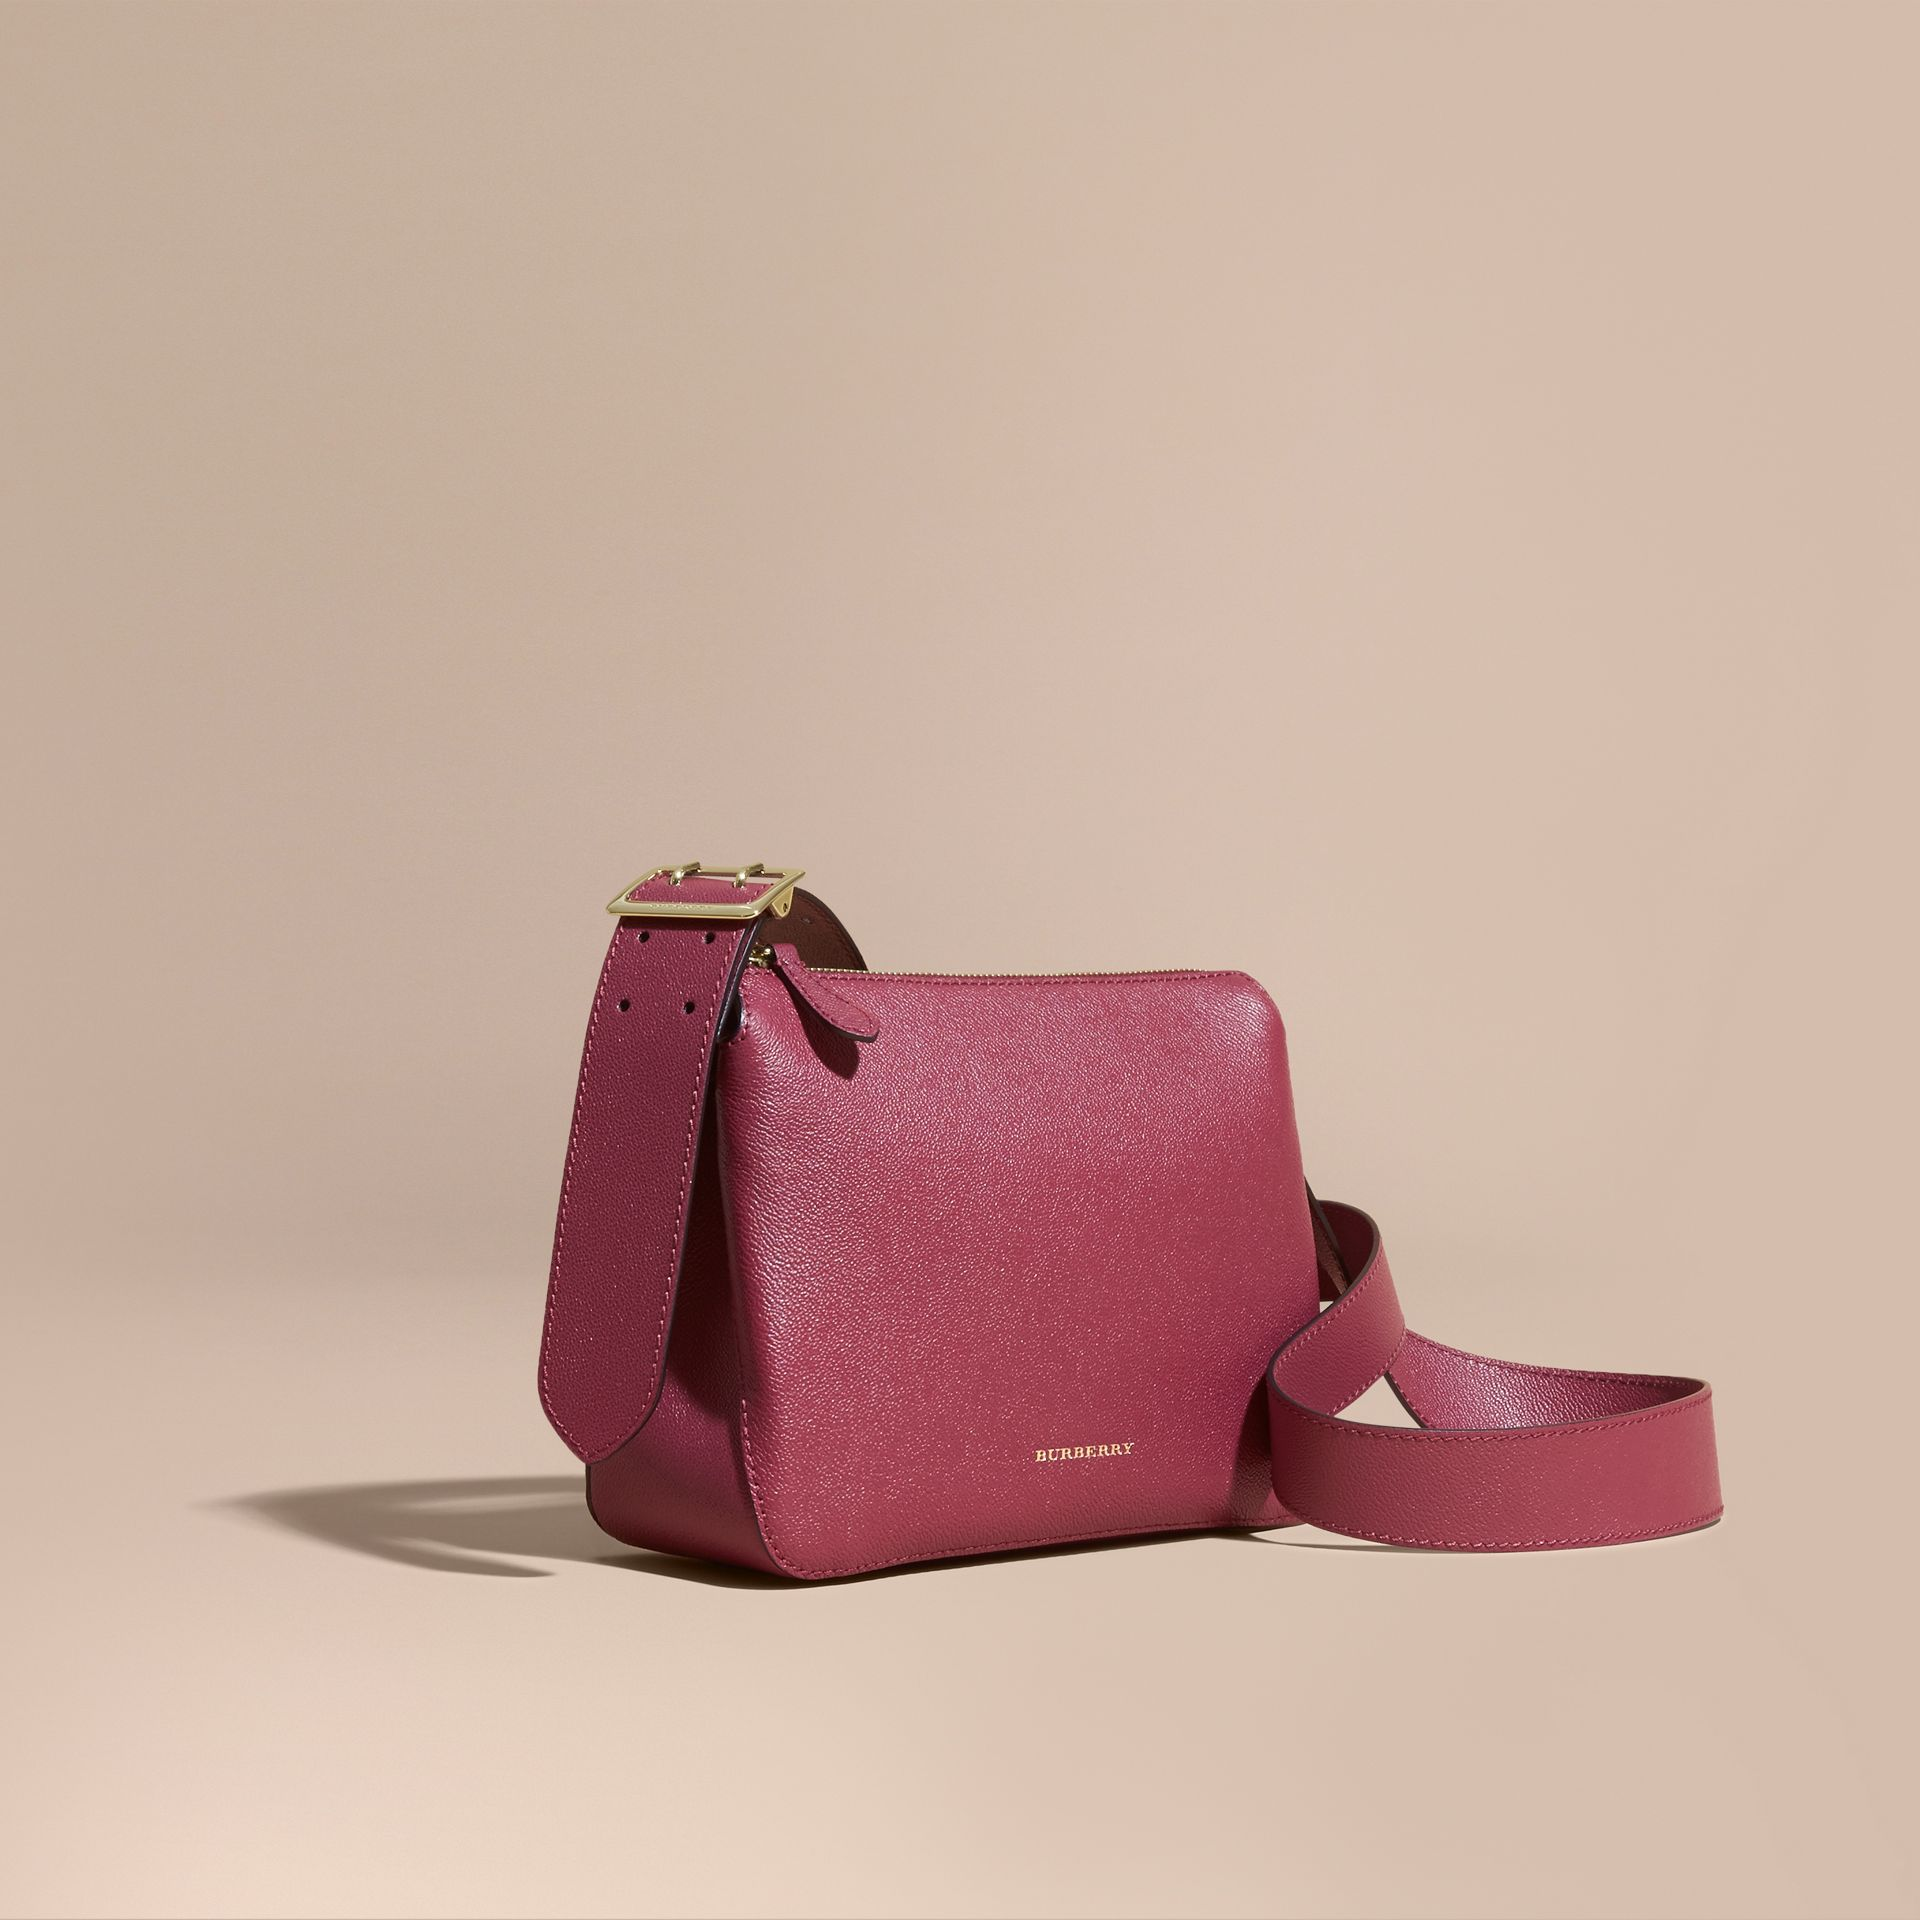 Buckle Detail Leather Crossbody Bag Dark Plum - gallery image 1